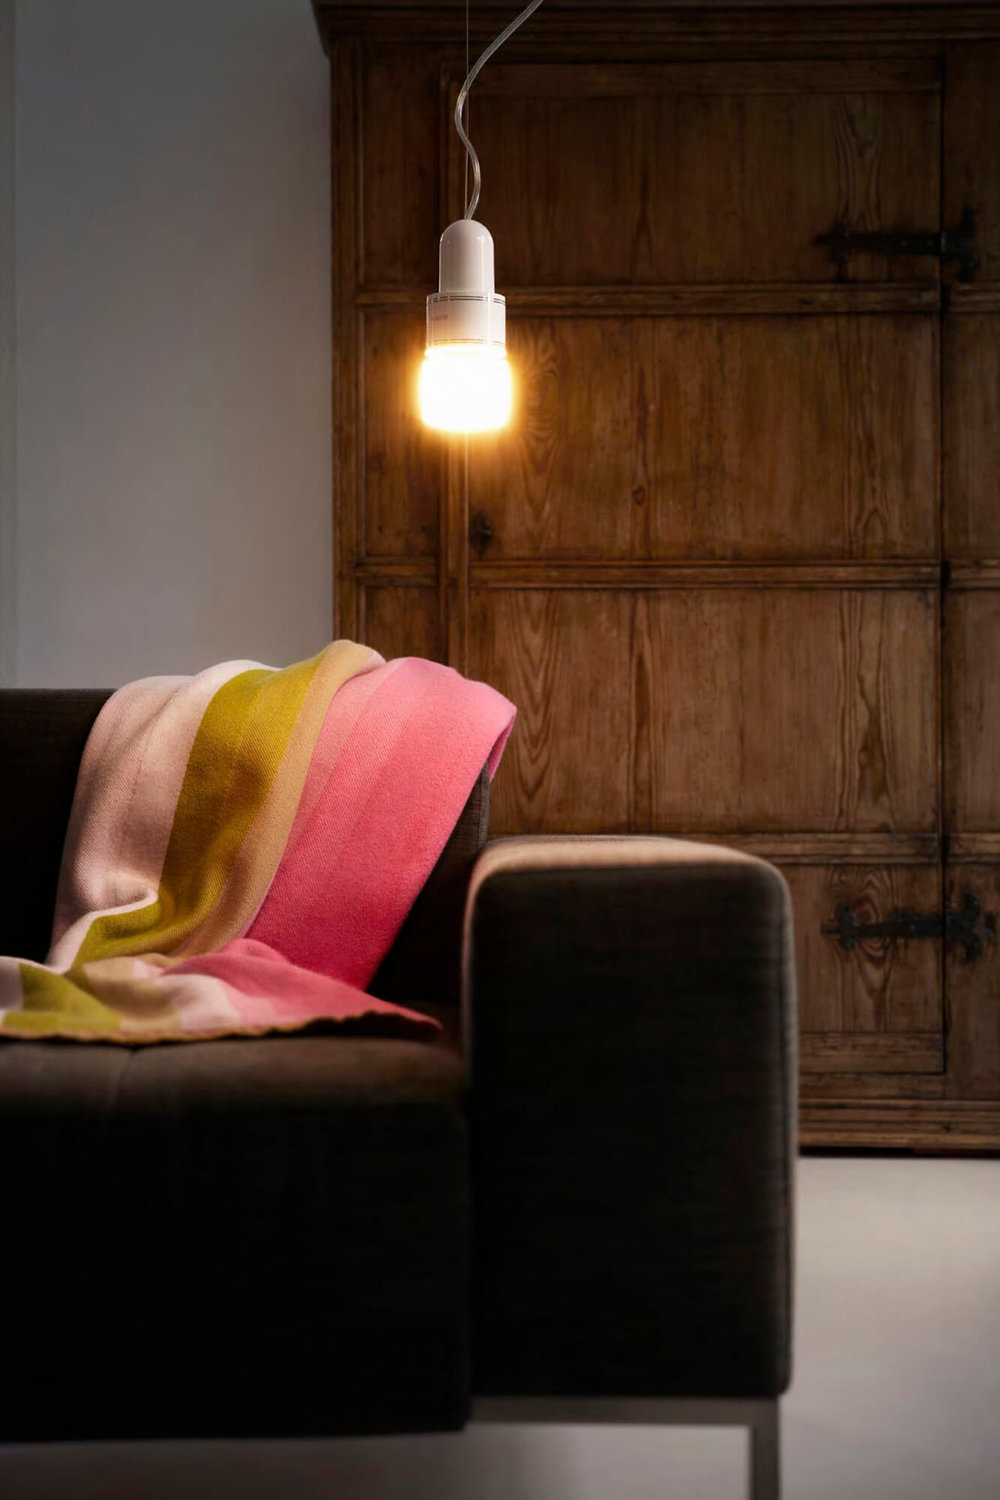 AlessiLux-TamTam-LED-light-bulb-with-sofa.jpg